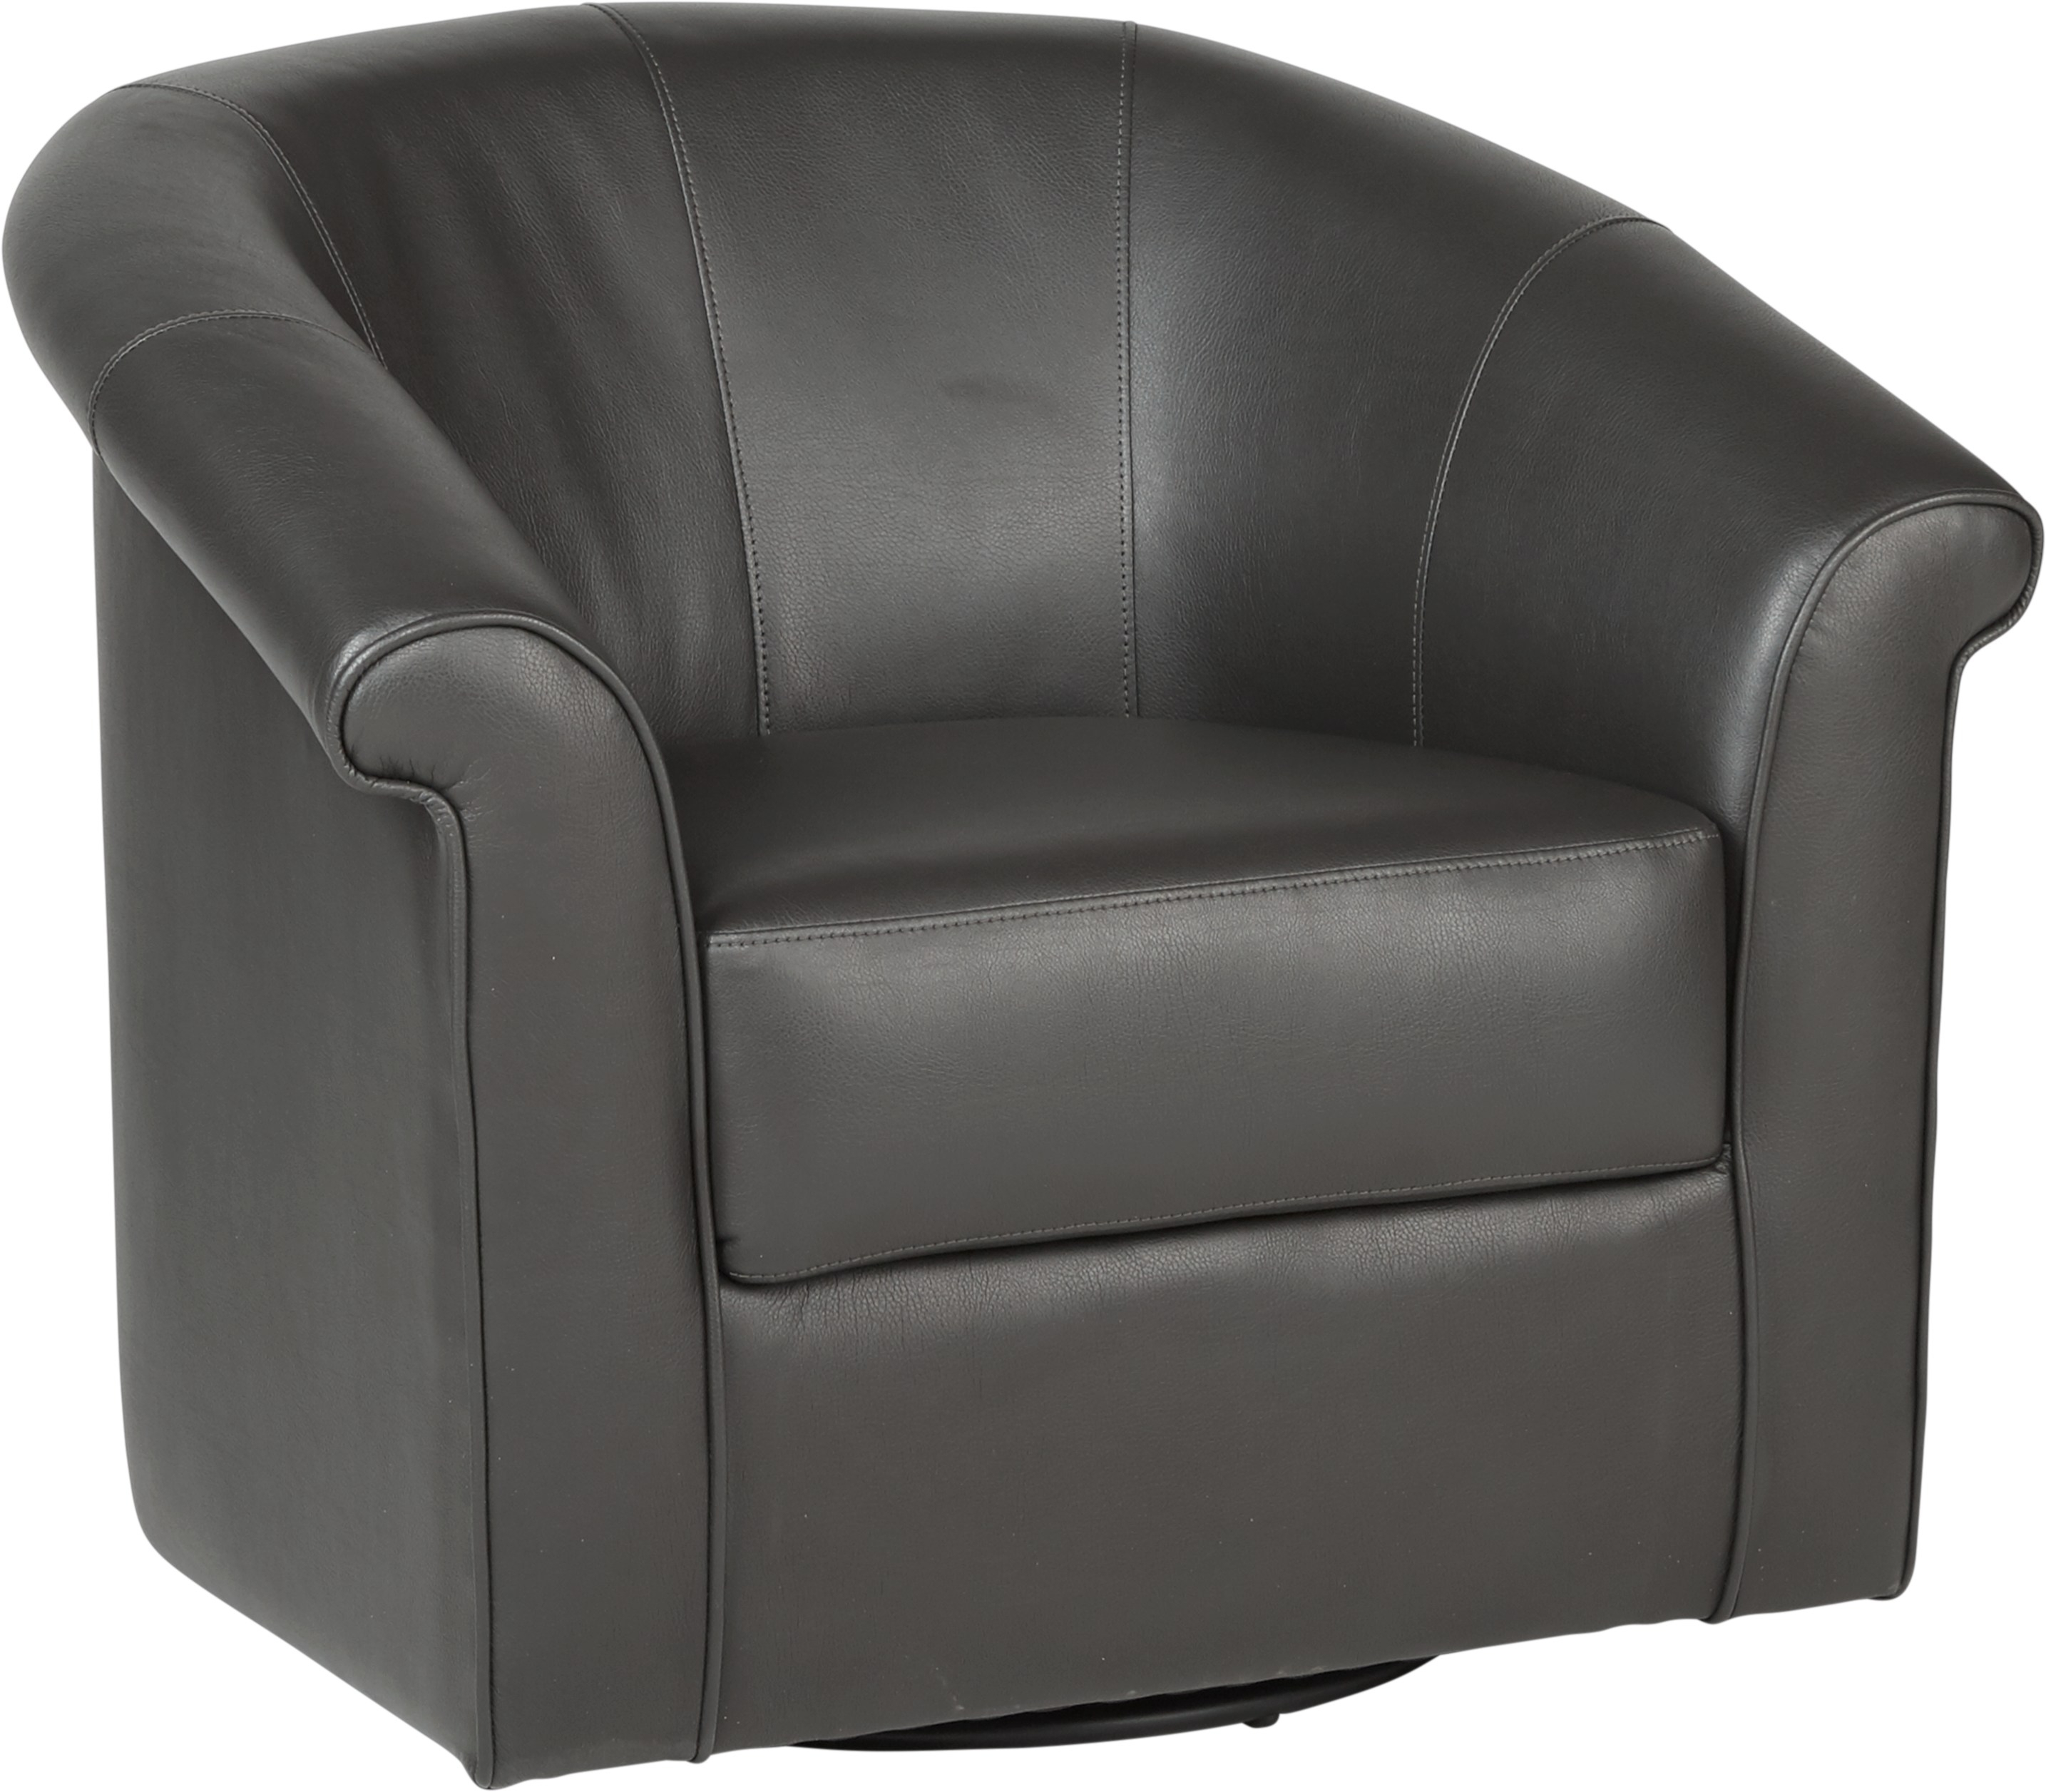 Benning Charcoal Swivel Chair – Chairs (Black) In Charcoal Swivel Chairs (Image 6 of 20)